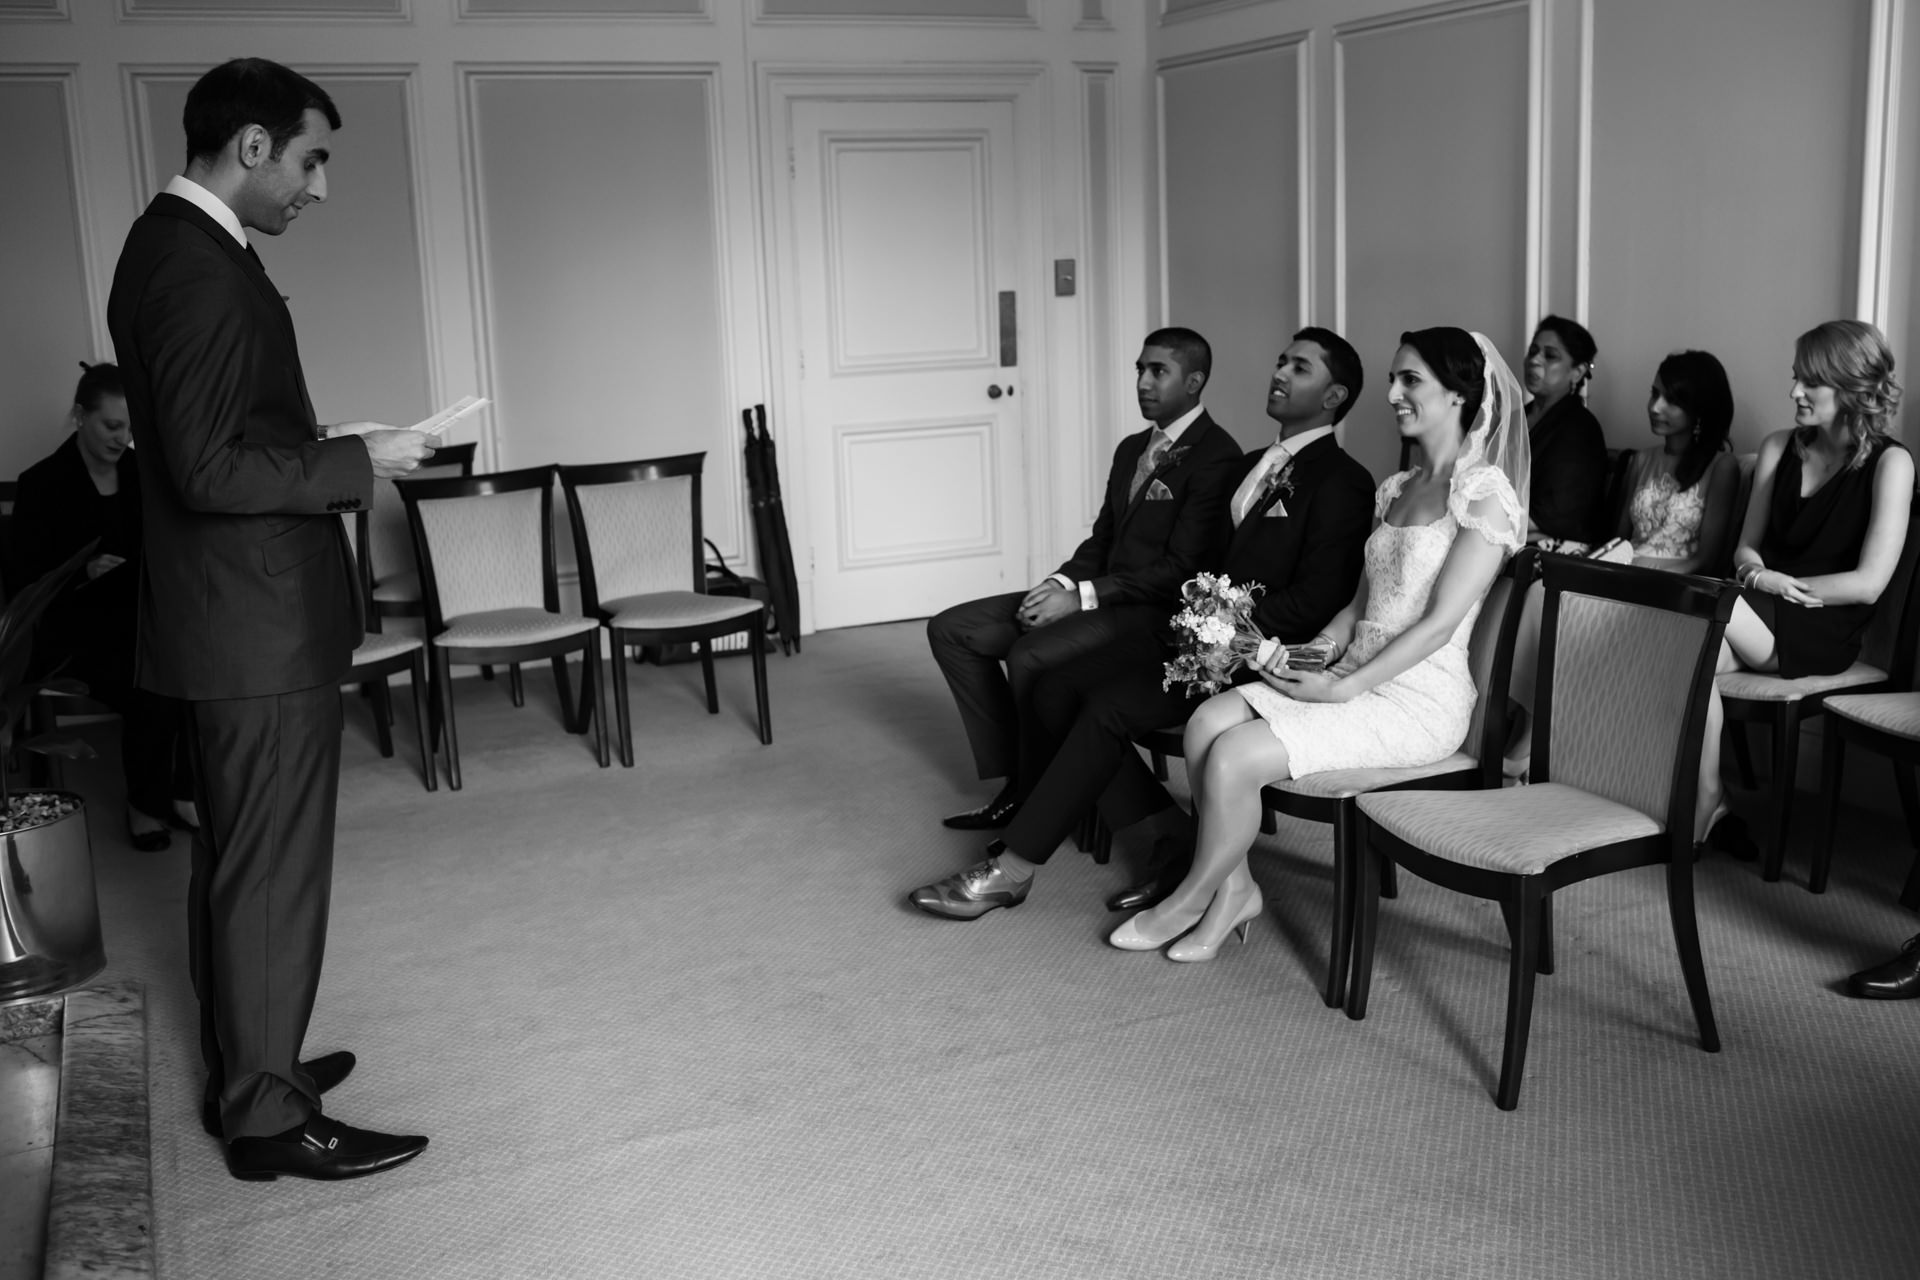 Town Hall of Westminster Civil Ceremony - London Wedding Photo | a reading during the ceremony as the bride and groom sit among their family